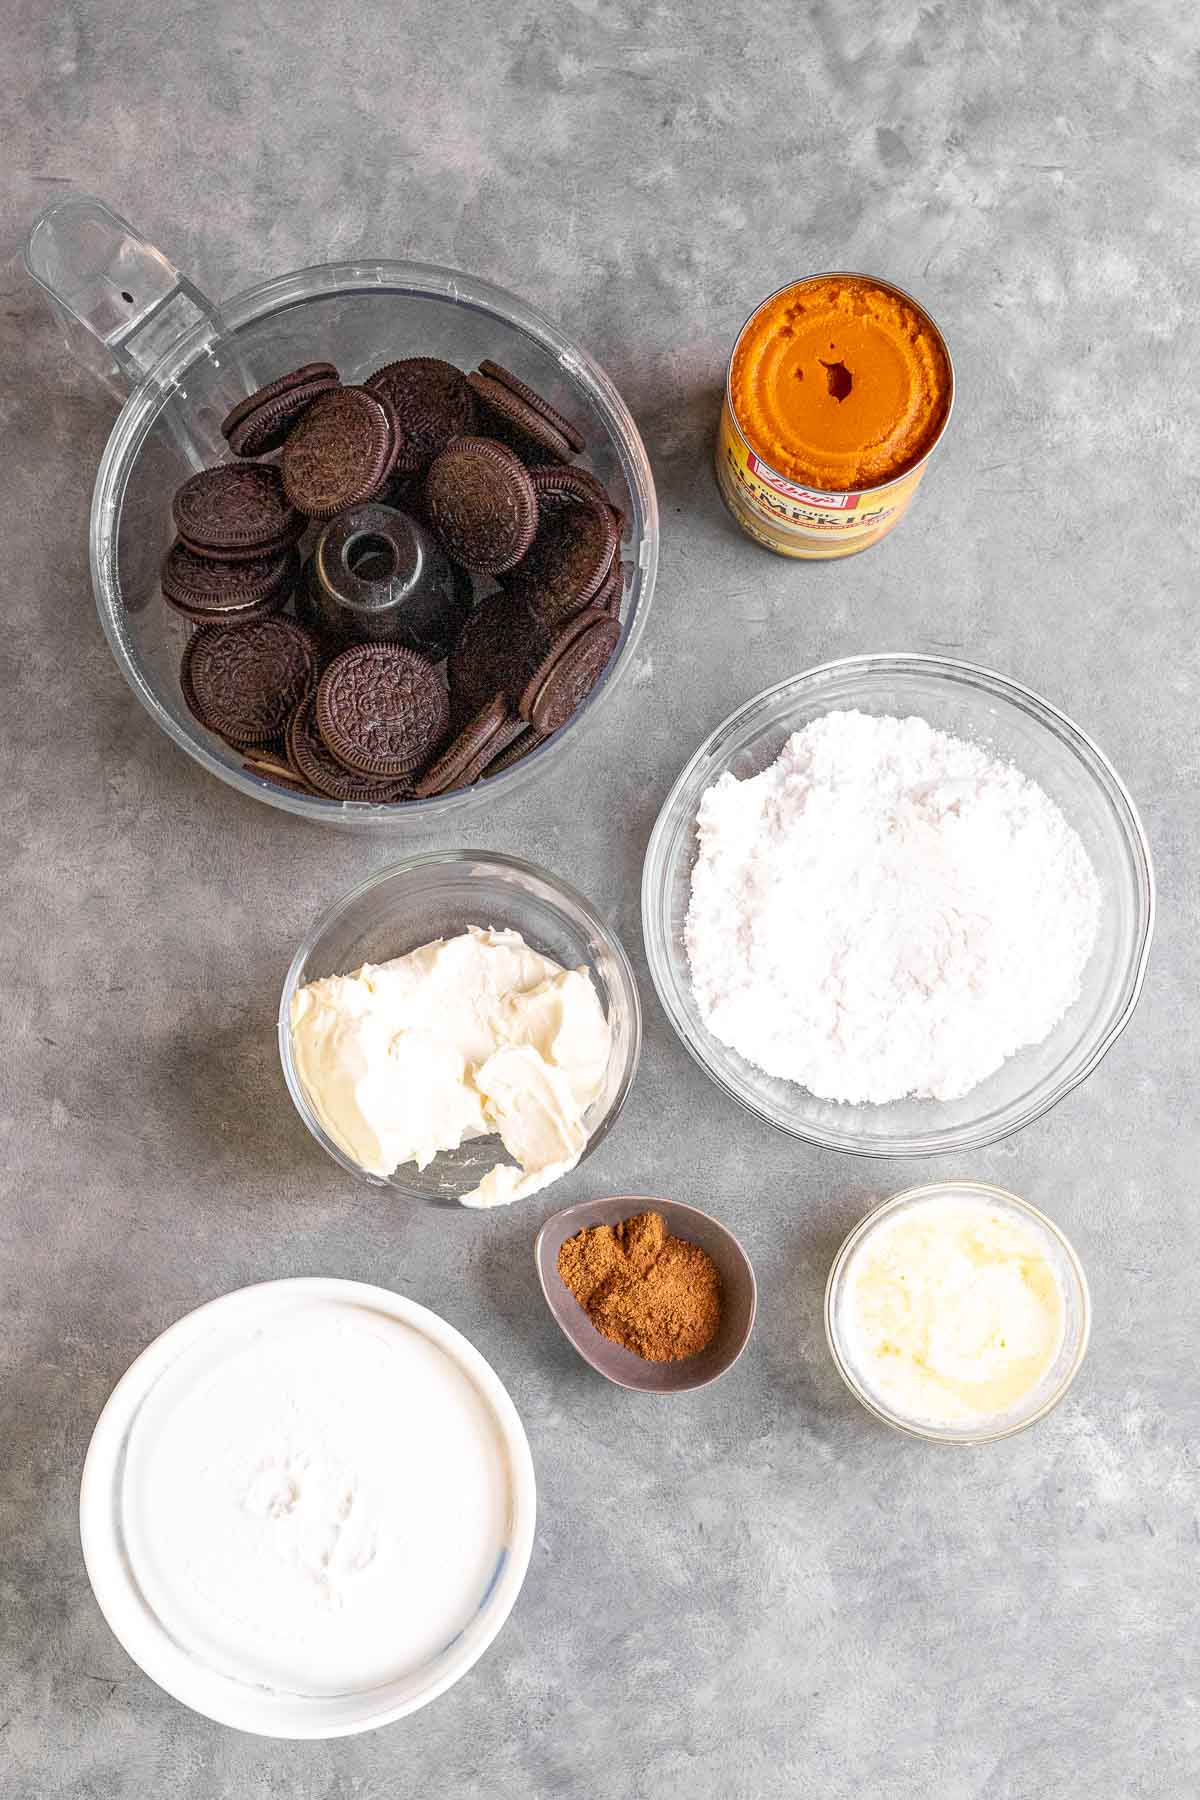 Ingredients for Chocolate Oreo Pumpkin Whip Pie